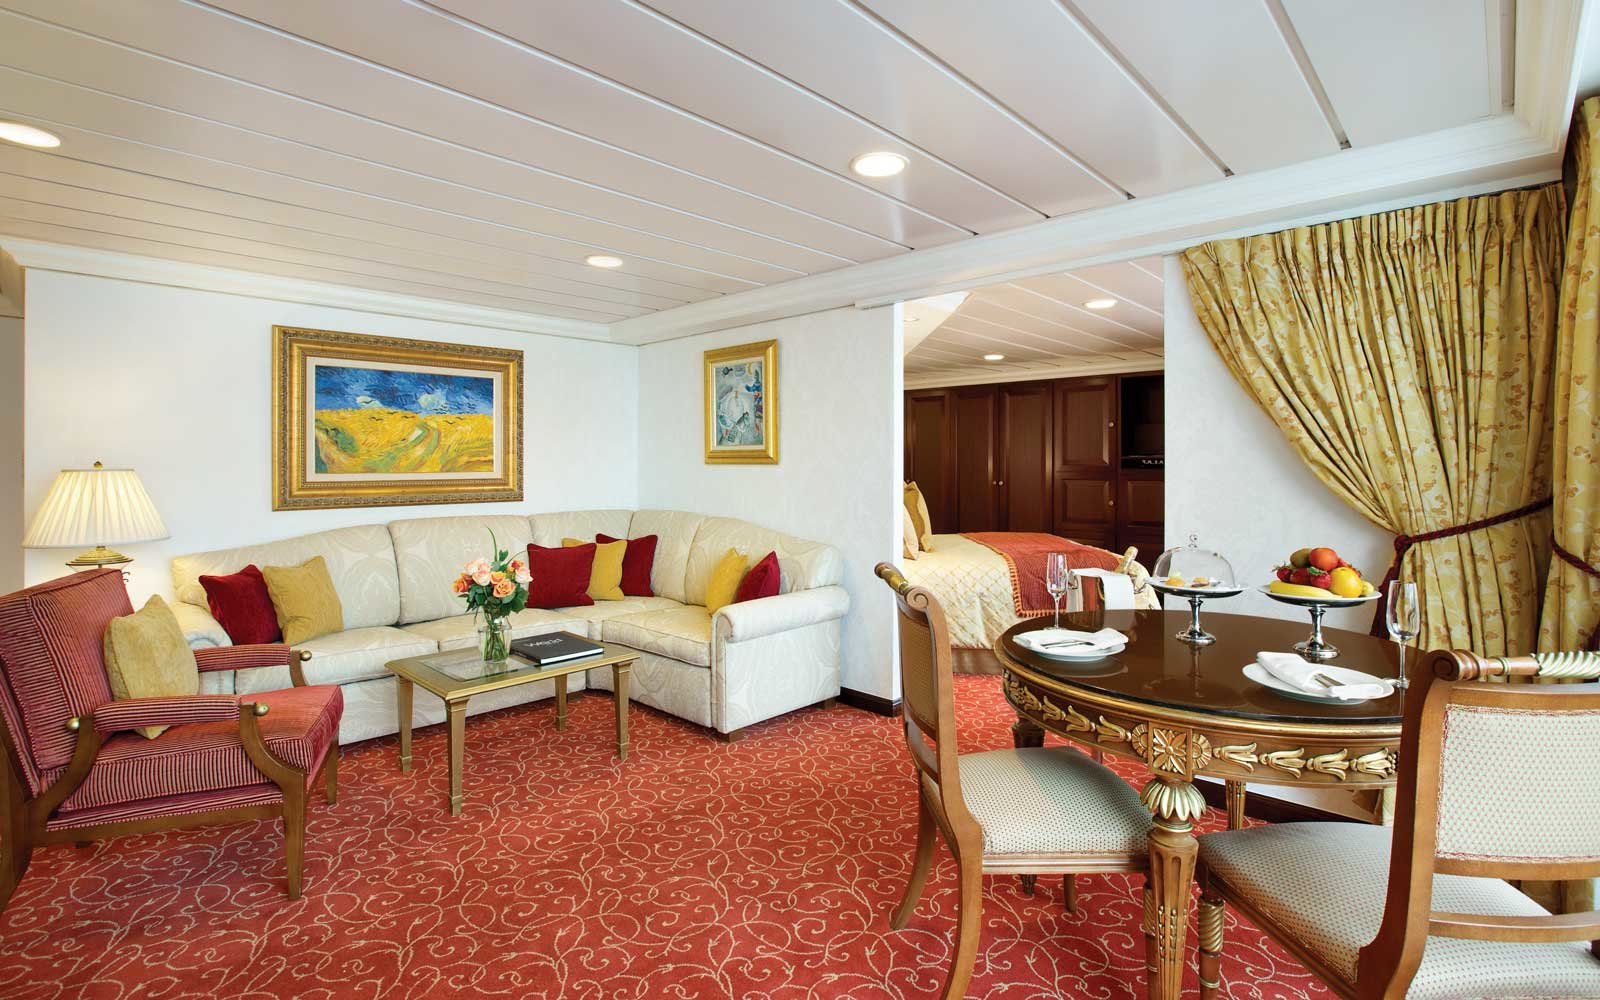 Five Things To Know About Oceania Cruises Regatta Cruise Ship - Oceania regatta cruise ship